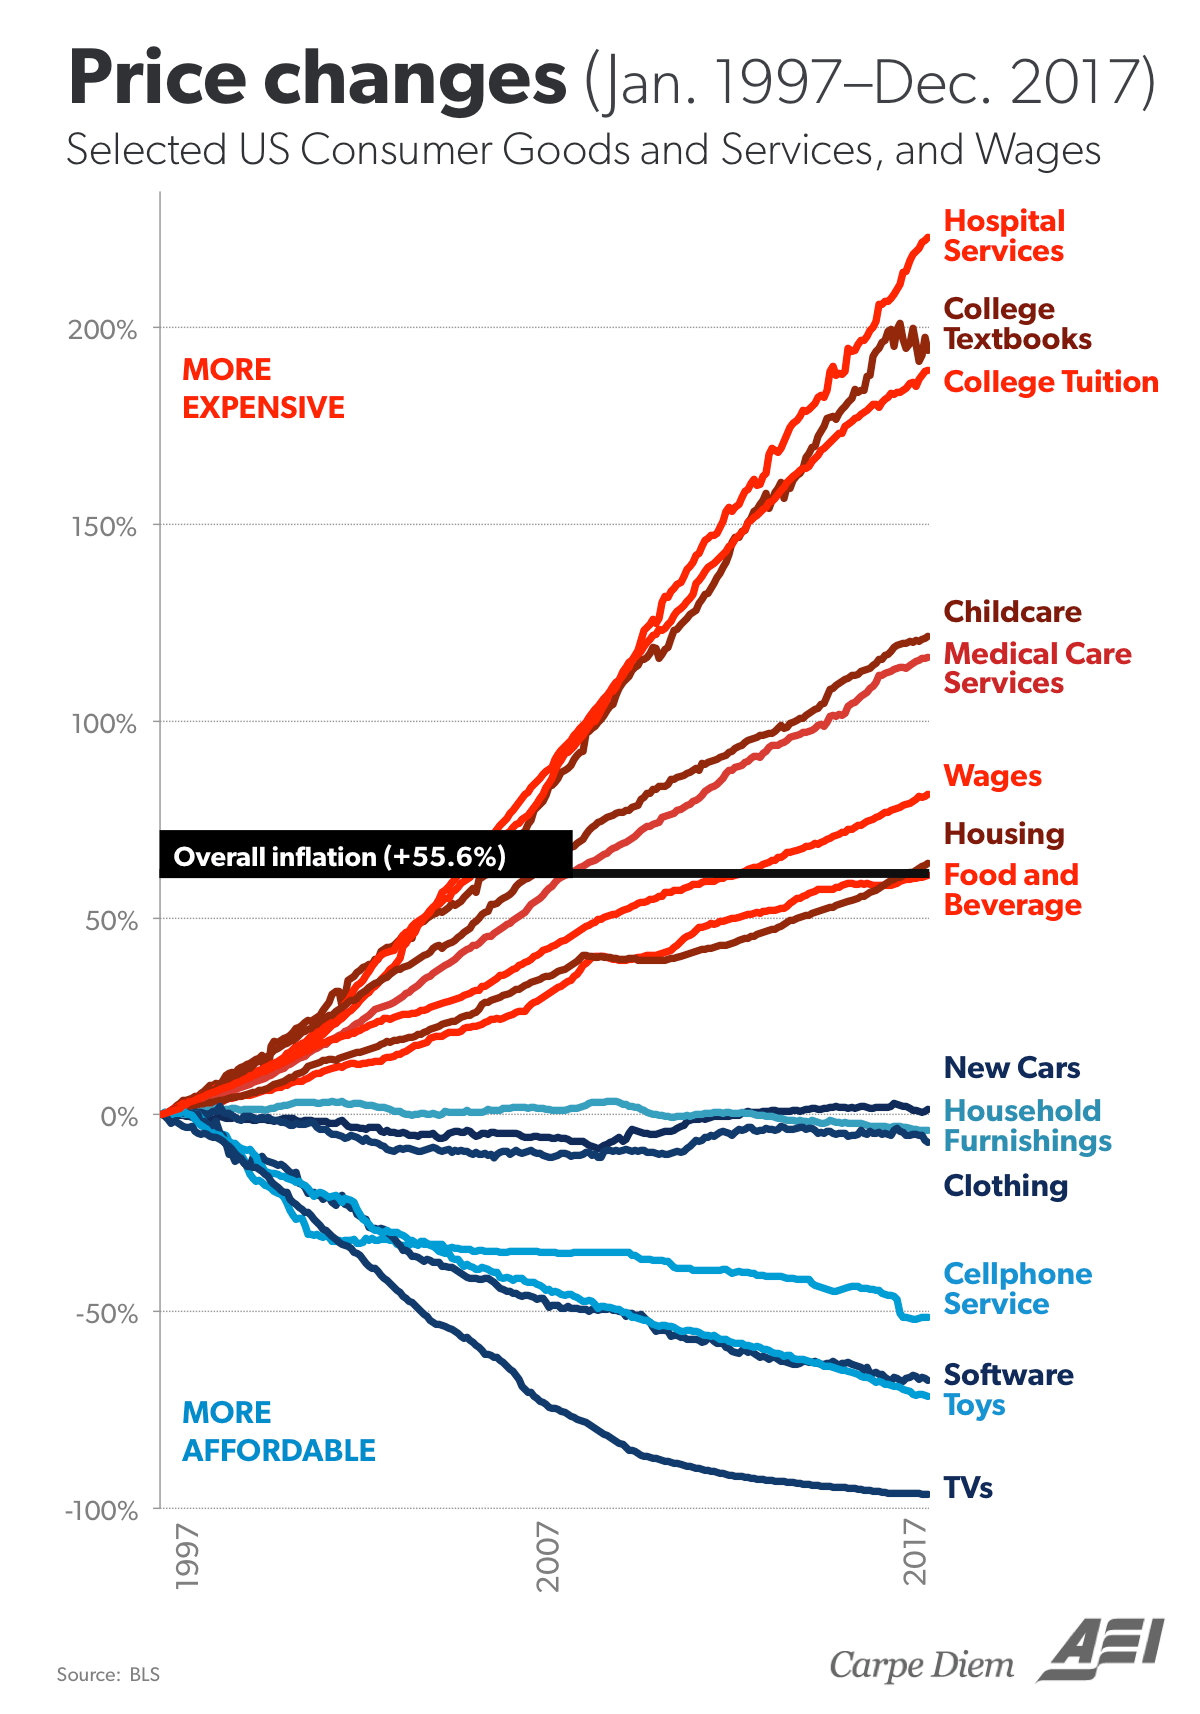 small resolution of as ritholtz points out the two big outliers to the upside are health care and college on the flip side clothes cars tvs and technology in general